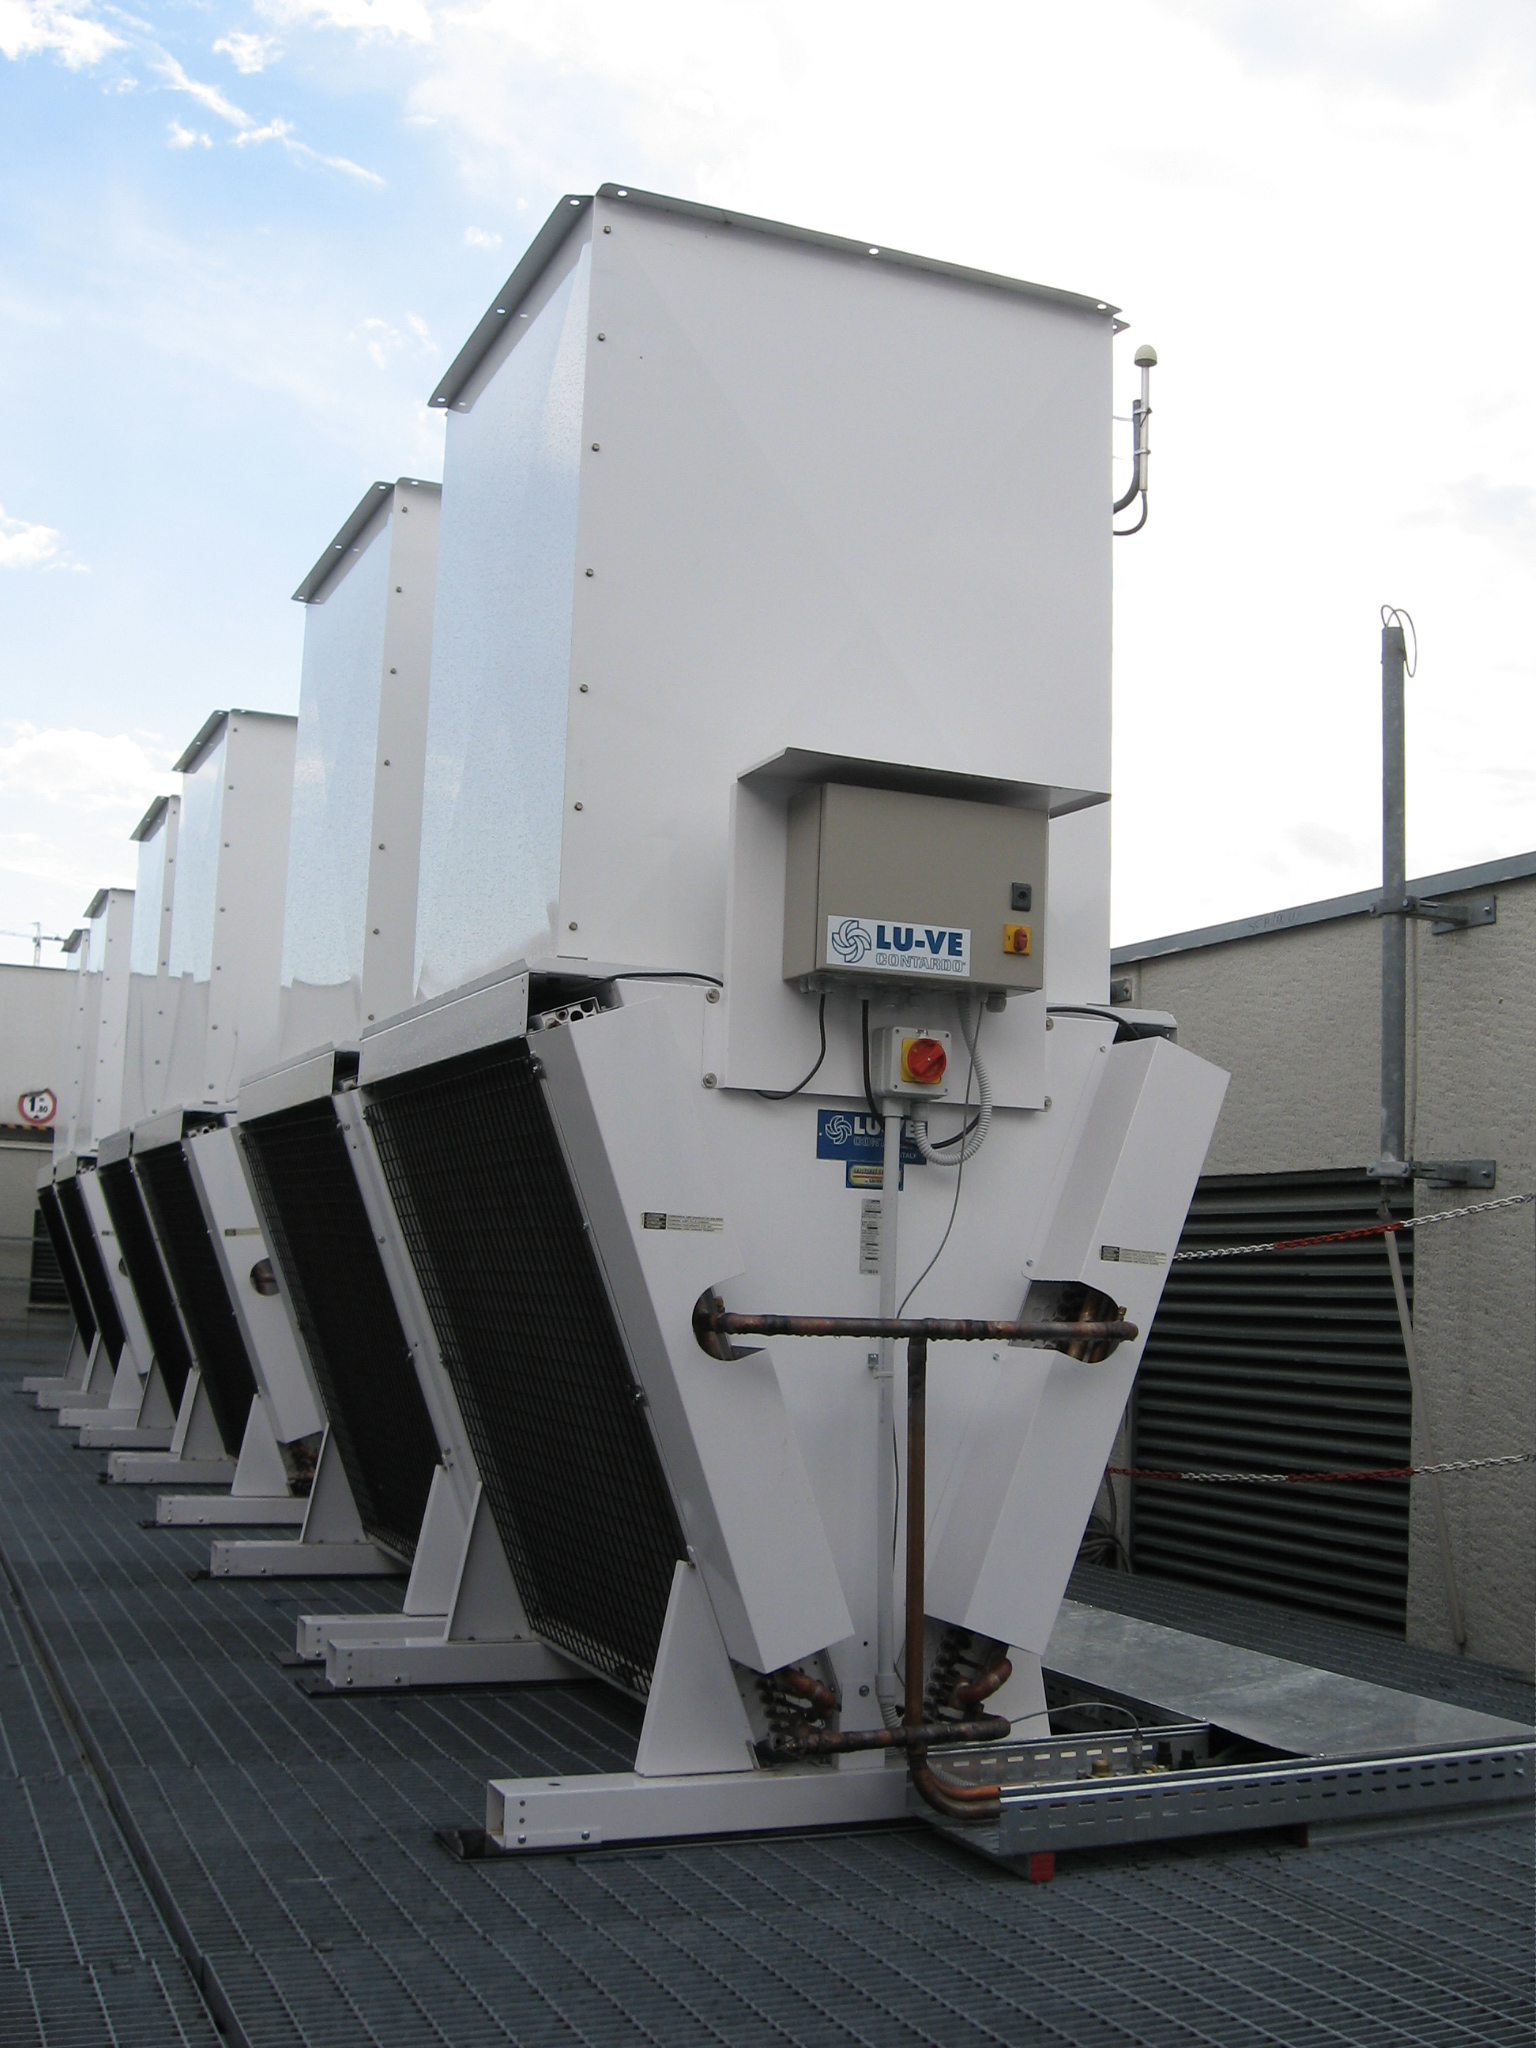 A/C Air conditioning installation, Milan, Italy - 22 pcs XDHV air cooled condensers